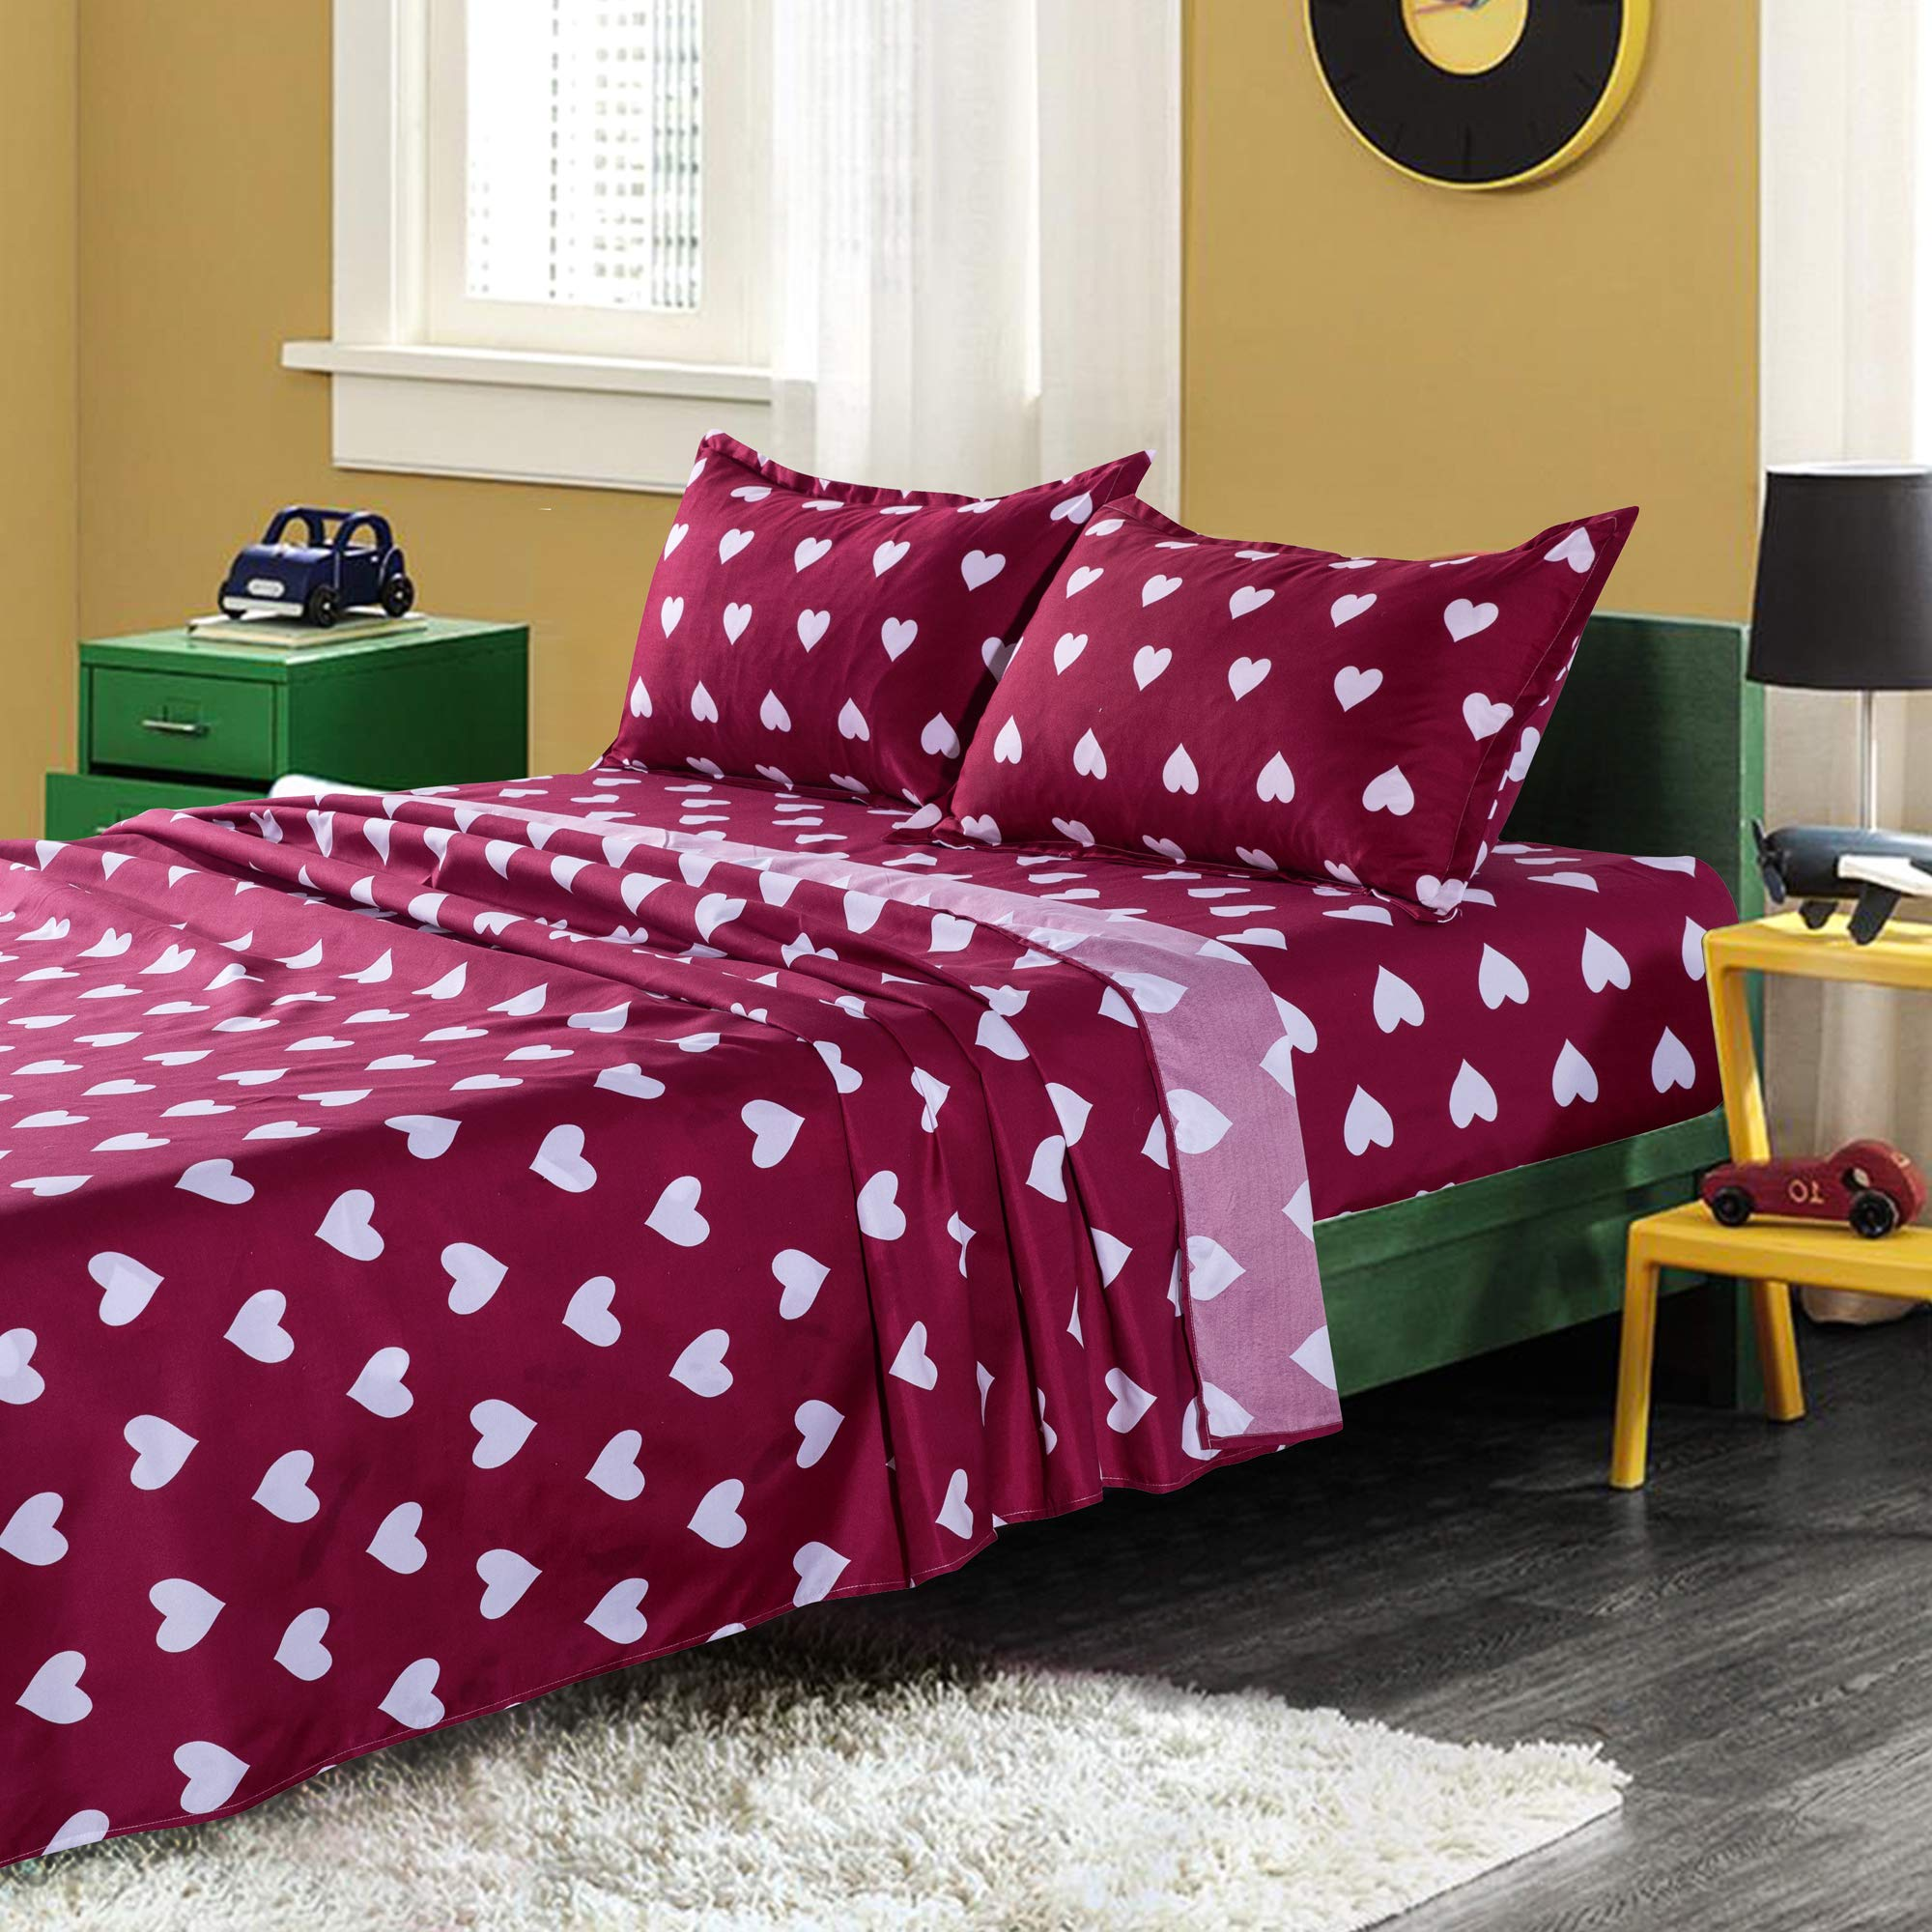 Kfz Twin Bed Sheets Set Red Color Love Themed Heart Shaped Printed 3piece Bed Set With 1 Fitted Sheet 1 Flat Sheet 1 Pillowcase Soft Egyptian Quality Brushed Microfiber Bedding Set Buy Online